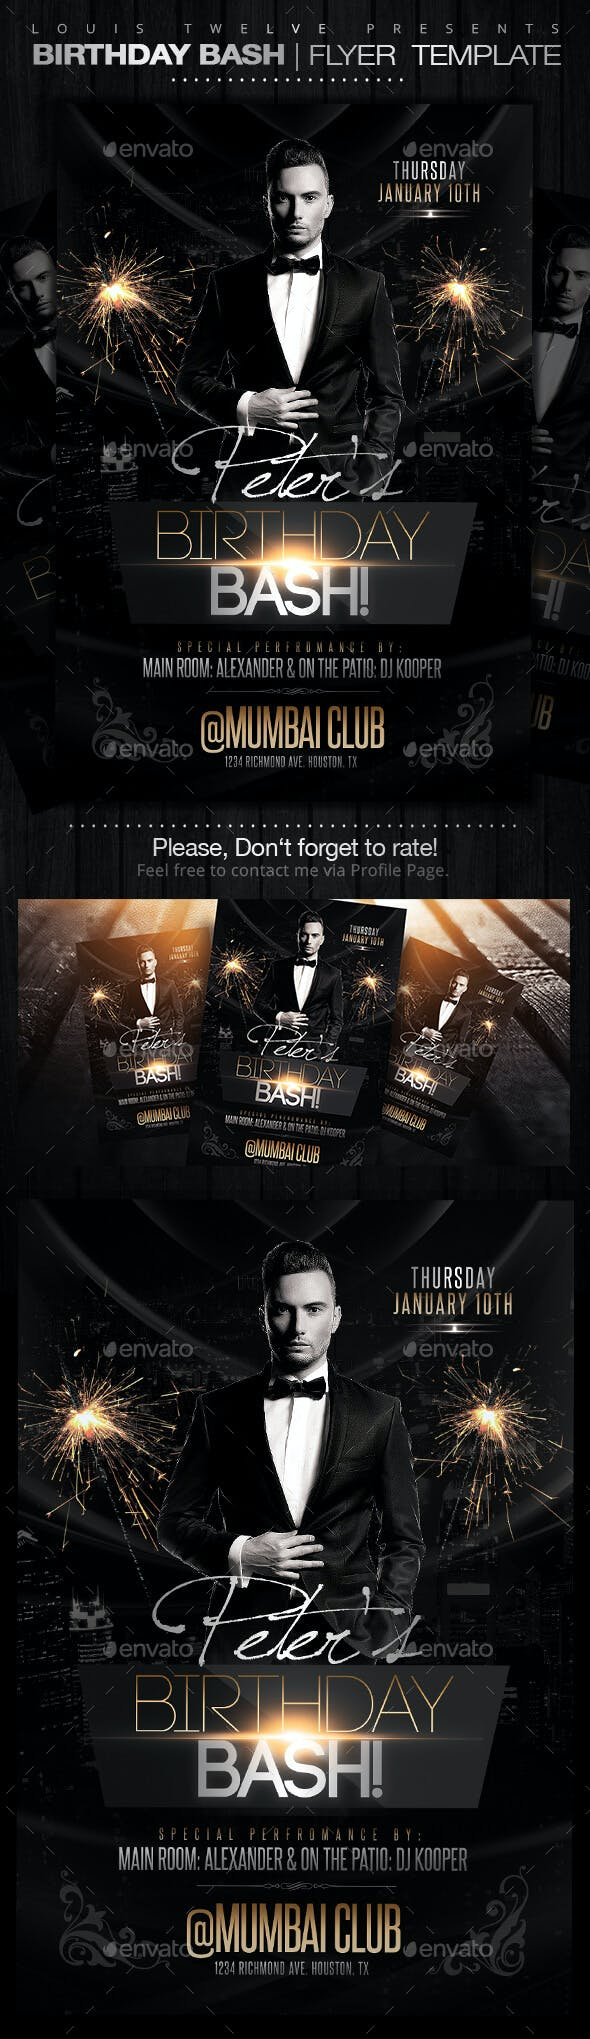 birthday bash flyer template by louistwelve design graphicriver